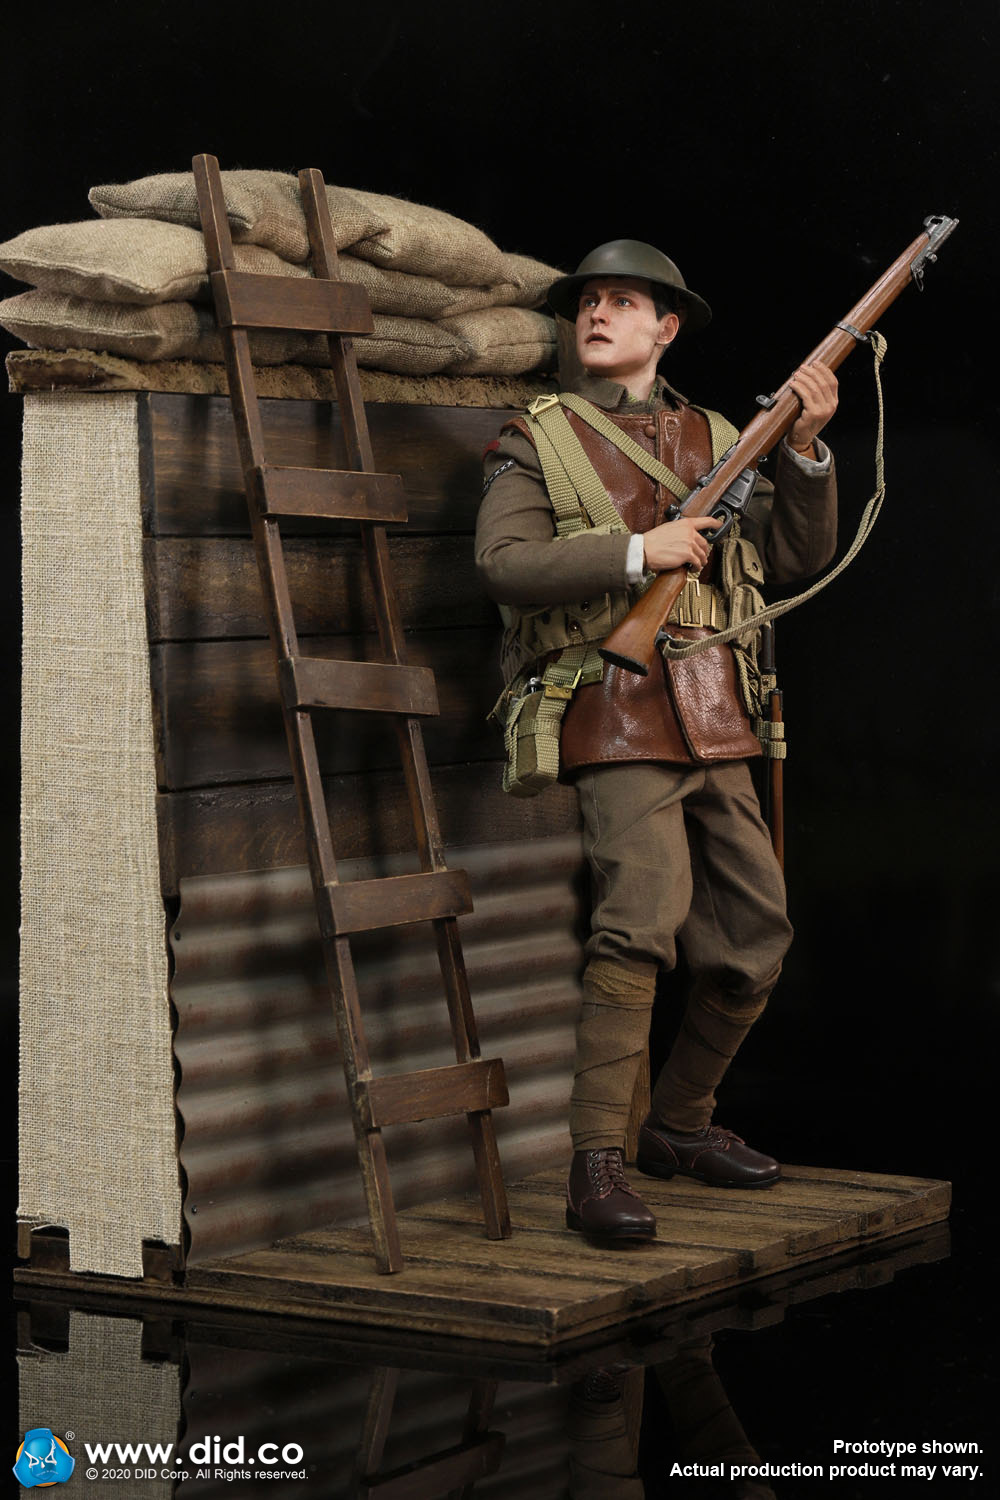 military - NEW PRODUCT: DiD: B11011 WWI British Infantry Lance Corporal William & Trench Diorama Set (UPDATED INFORMATION) 2665